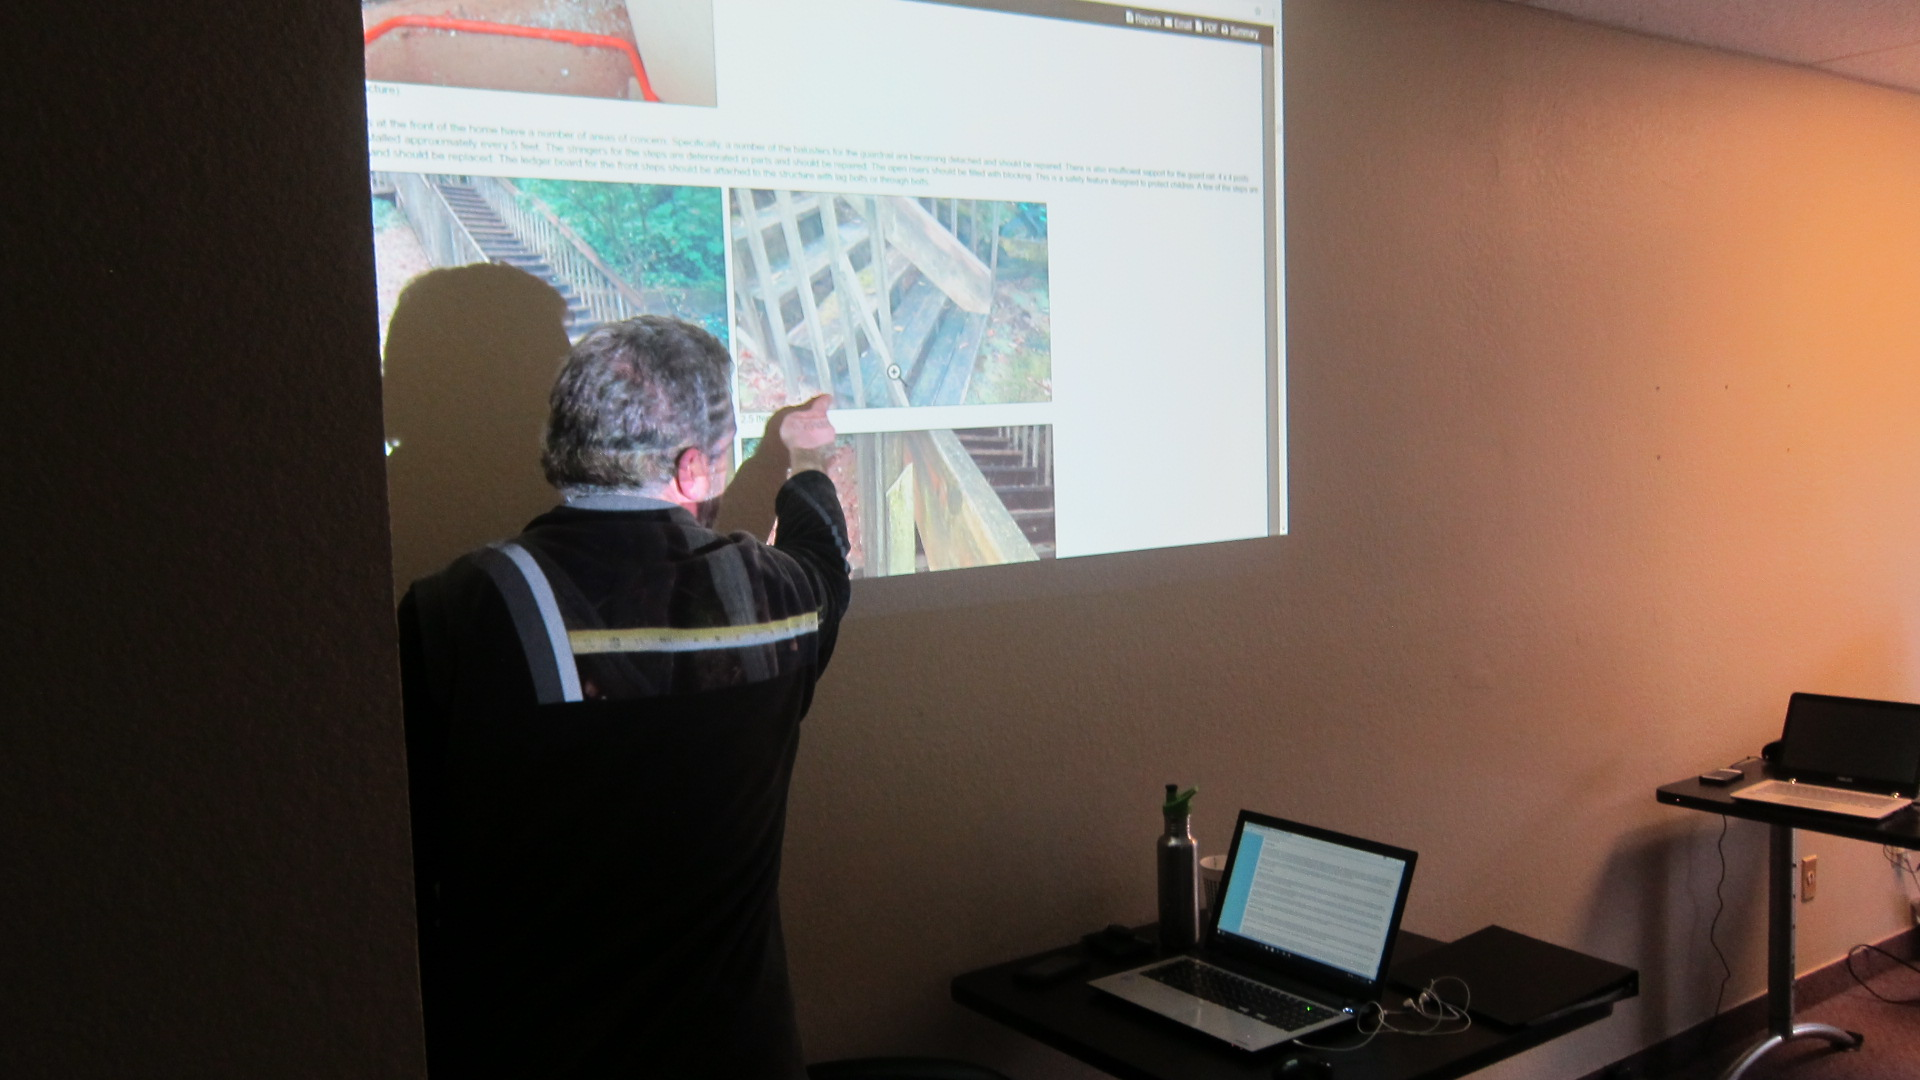 With a combination of web based and hands on instruction, our home inspector training program helps bring critical concepts together.